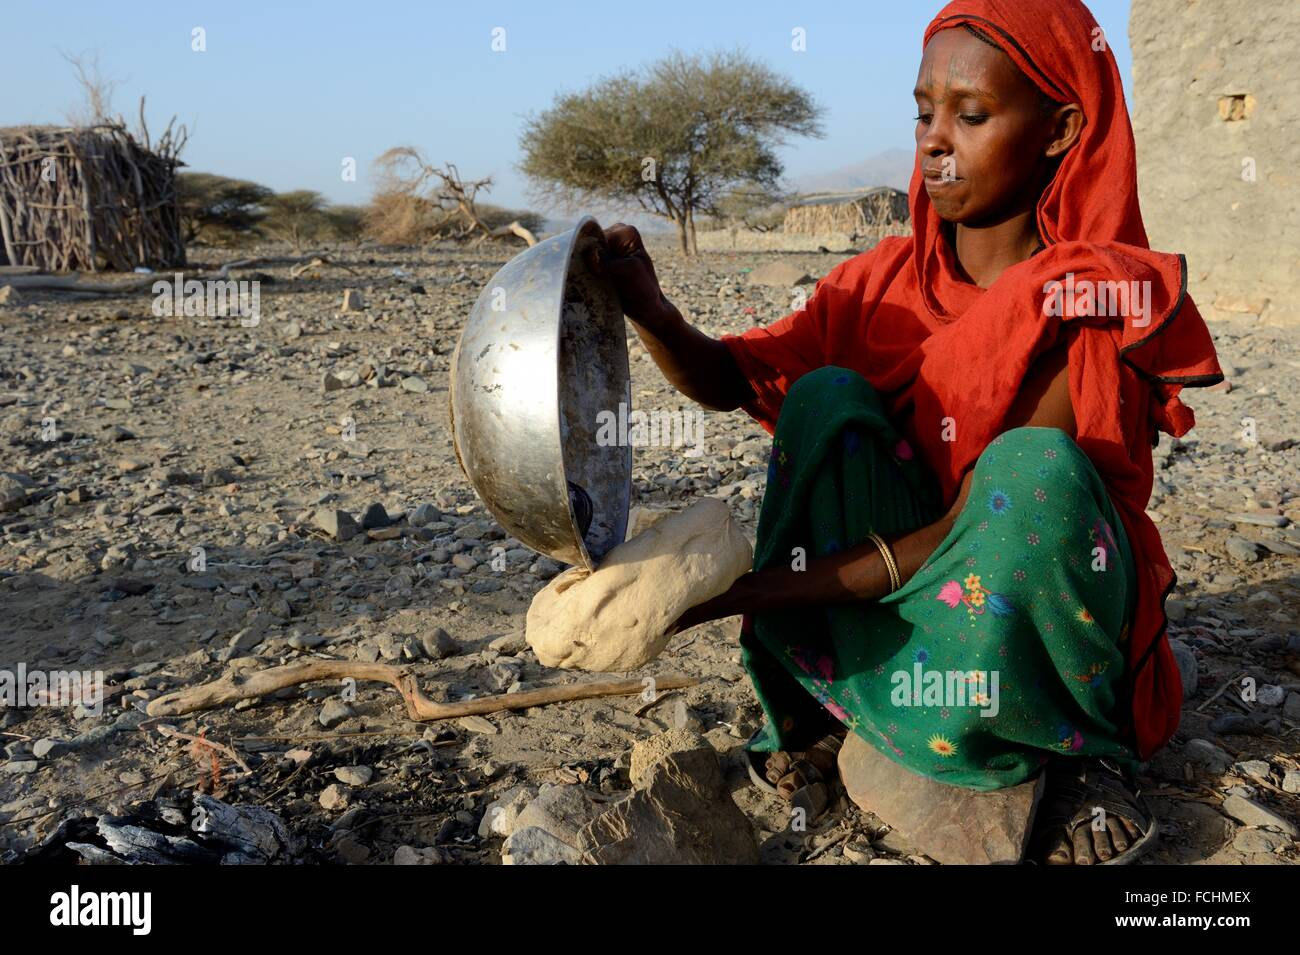 Afar tribe woman baking bread with a hot stone, Malab-Dei village, Danakil depression, Afar region, Ethiopia, Africa. - Stock Image